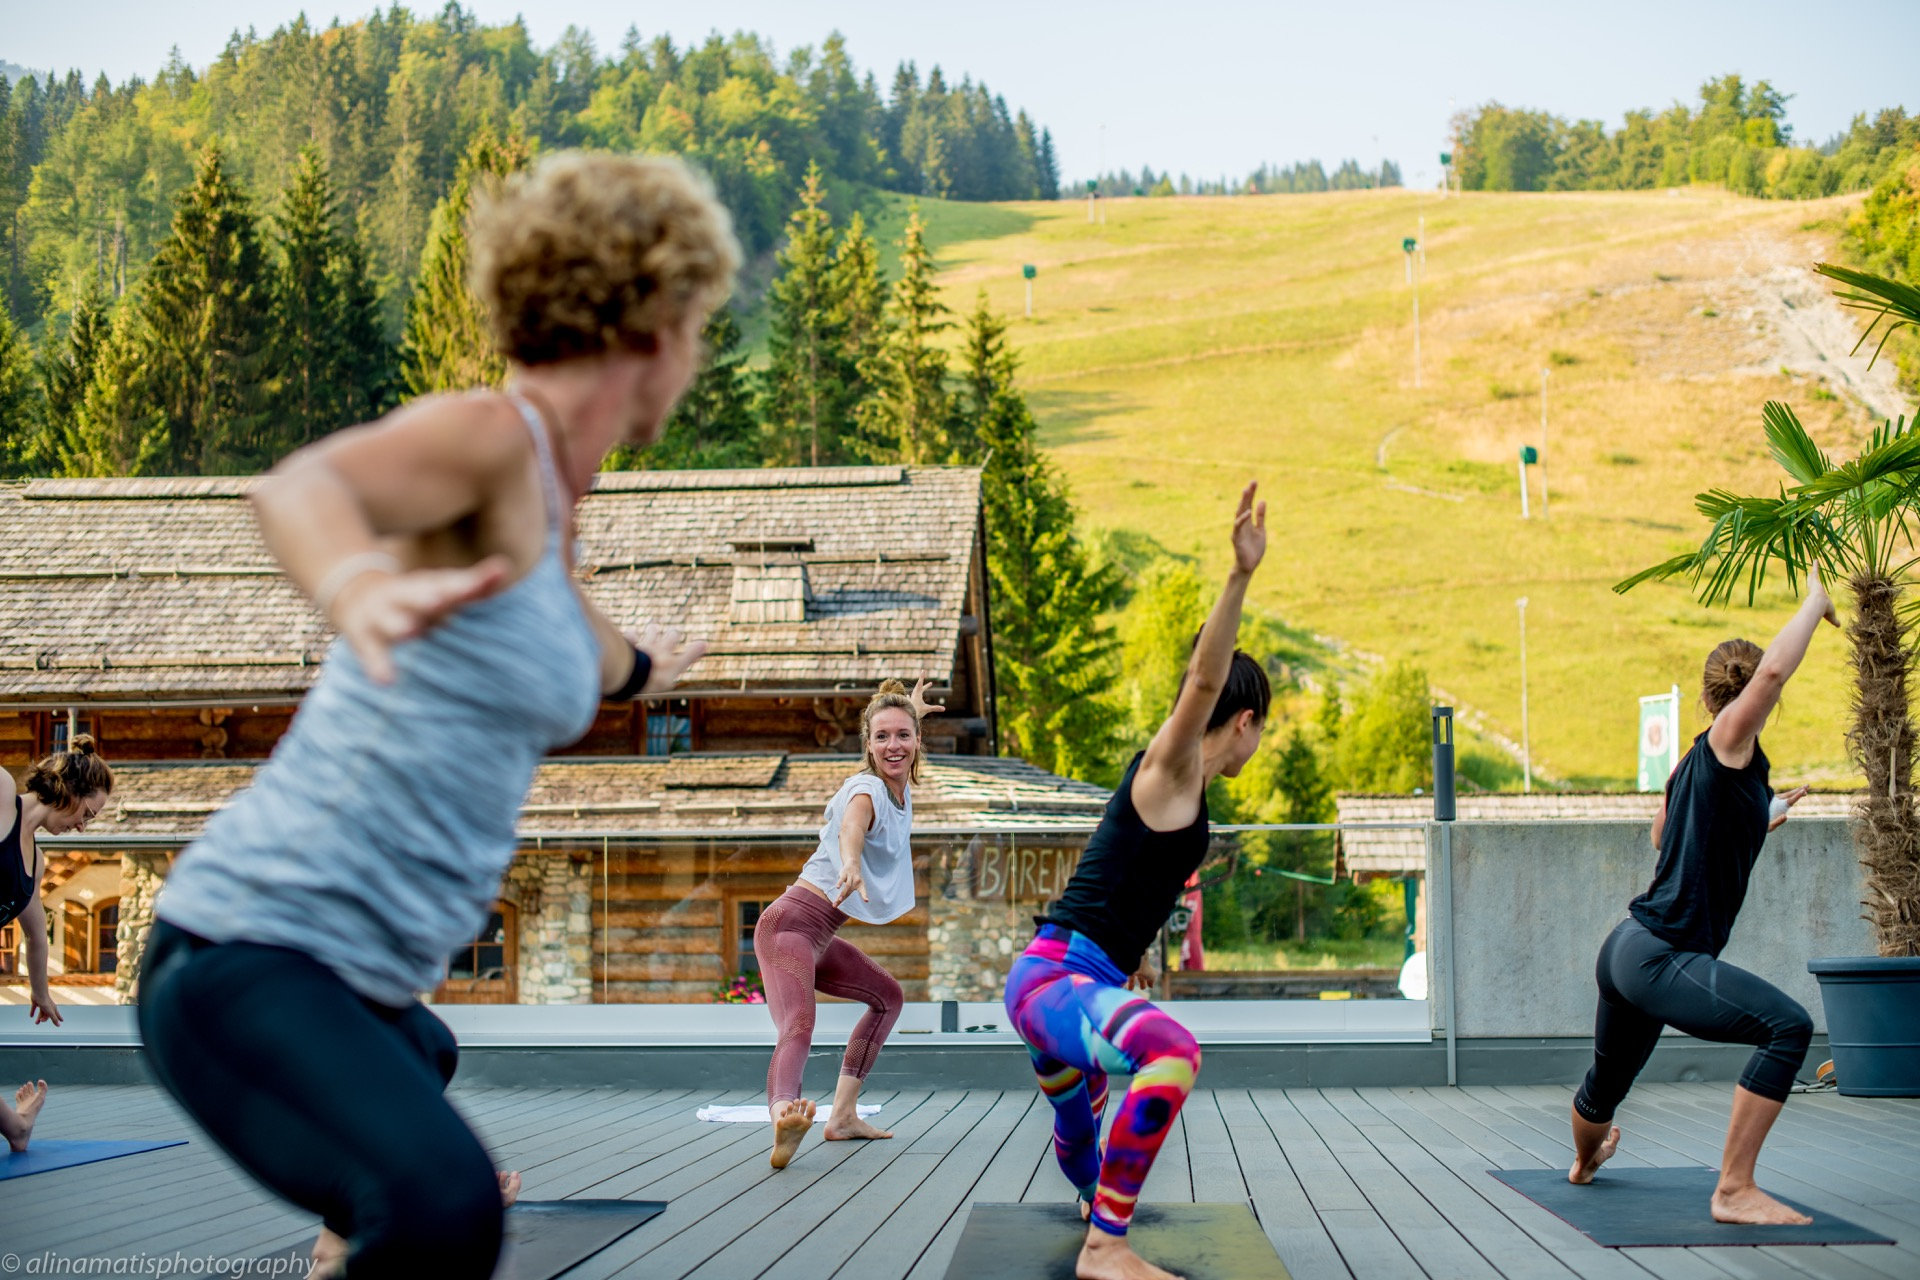 Hie-Kim-Friends-2018-Yoga-Retreat-Alina-Matis-Photography-078 - Hie Kim Yoga - Yoga Retreat - Yoga Workshops und Reisen